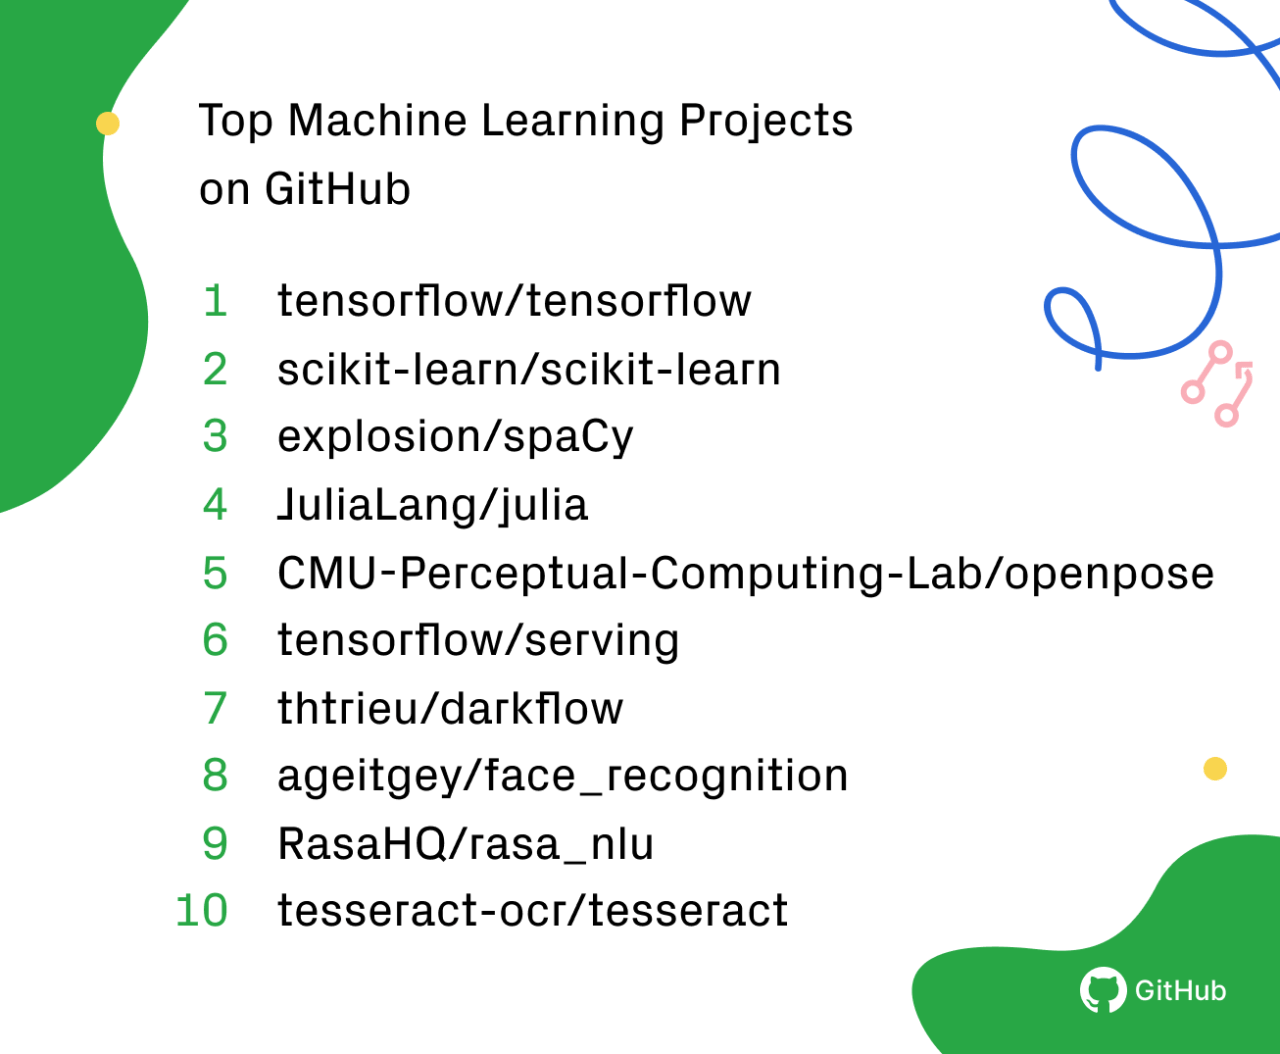 8: Should OpenAI open-source their impressive new language model